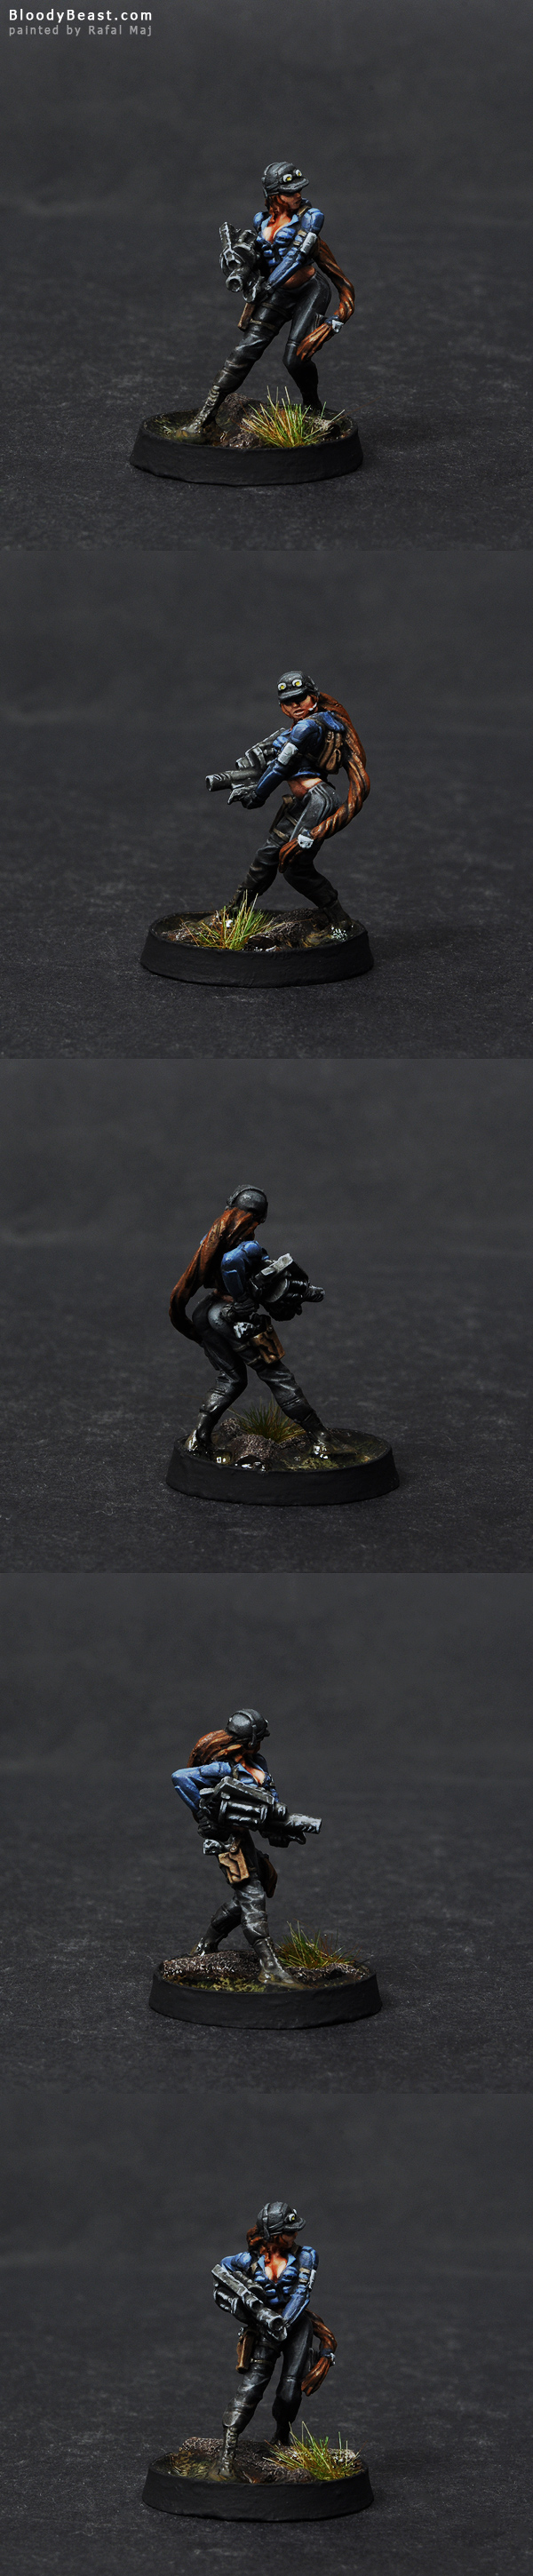 Ariadna Chasseurs Adhesive Launcher painted by Rafal Maj (BloodyBeast.com)